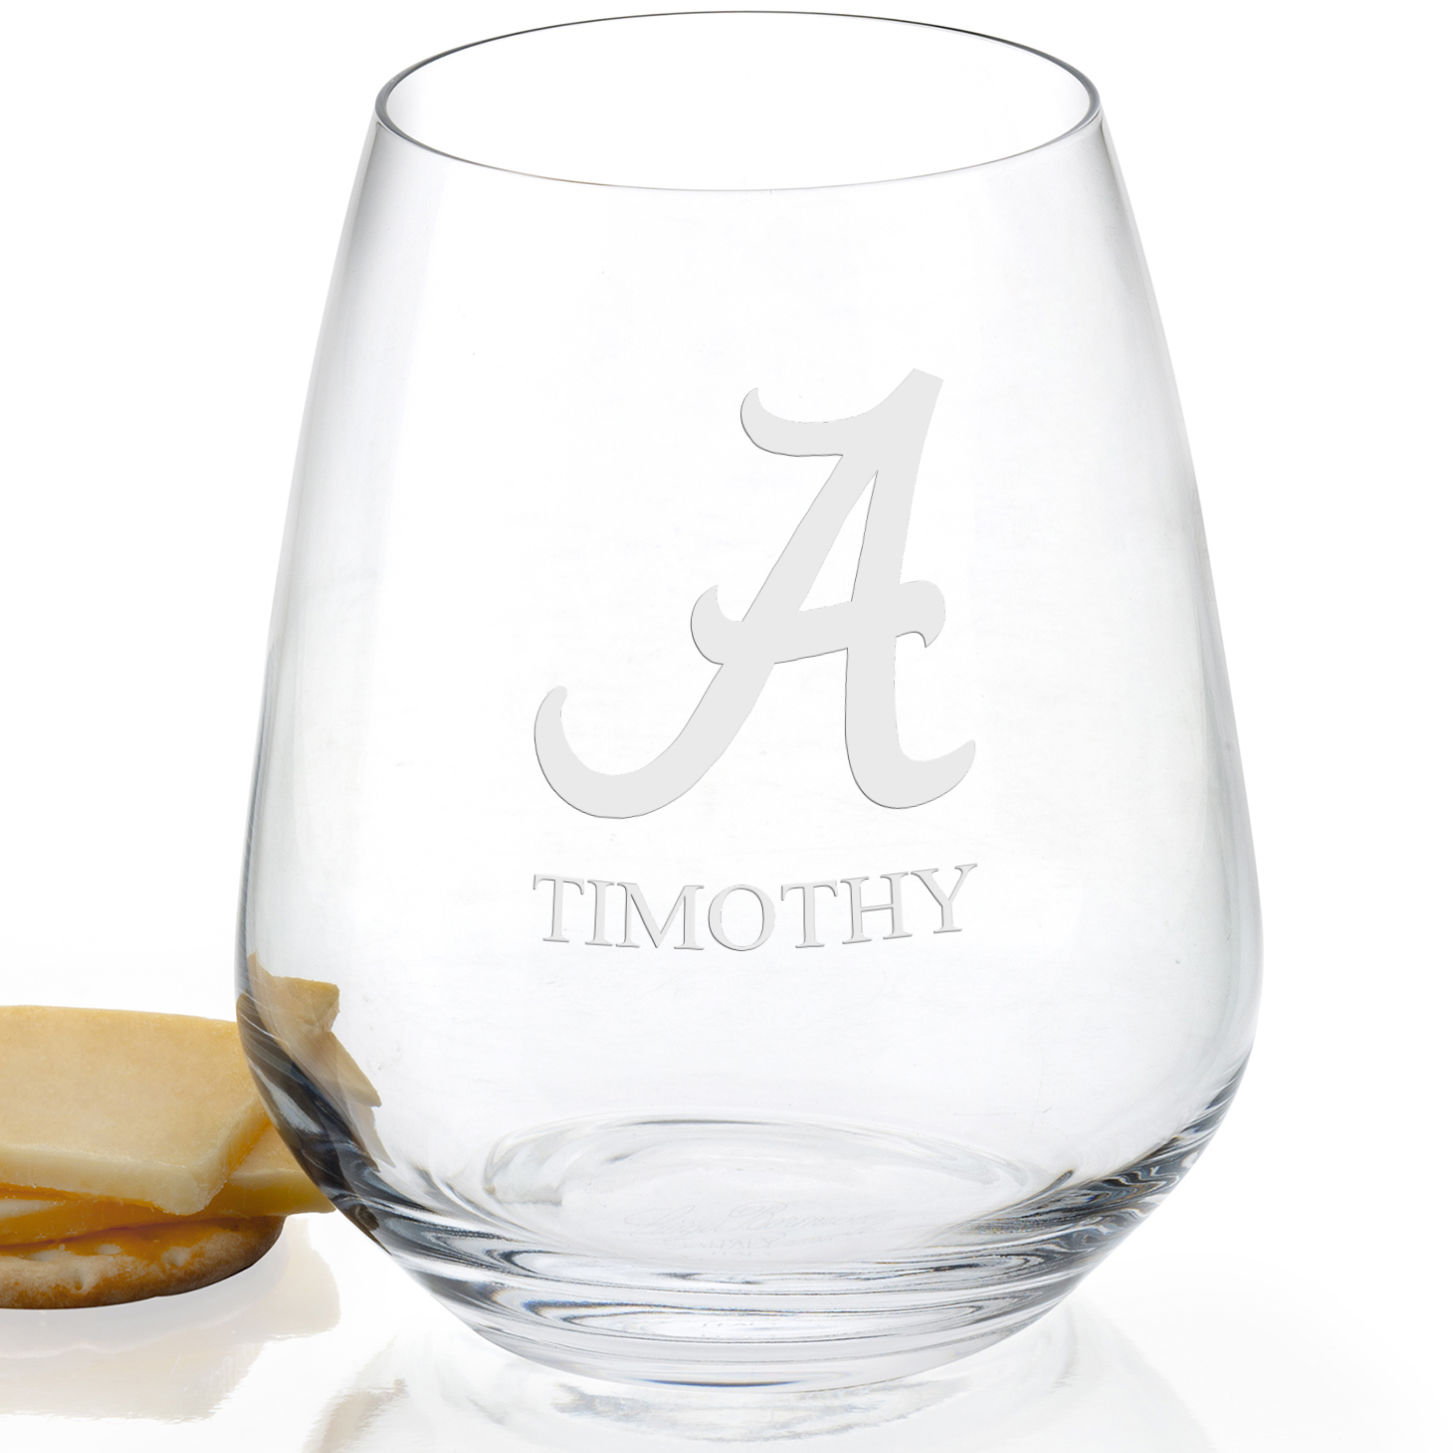 Alabama Stemless Wine Glasses - Set of 2